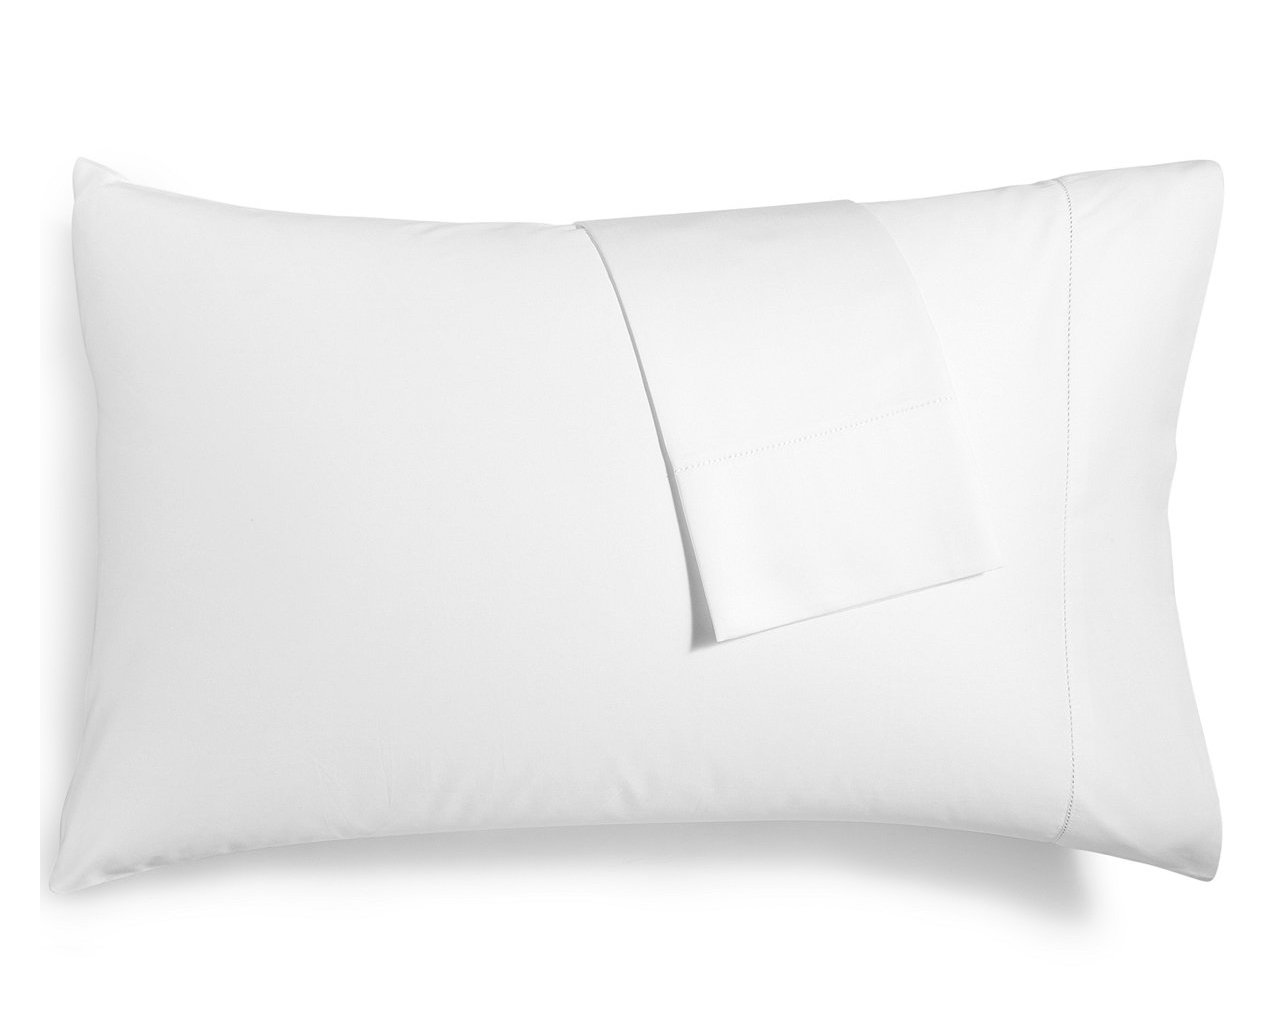 Hotel Collection Pair of 680 Thread Count 100% Supima Cotton King Pillowcases White